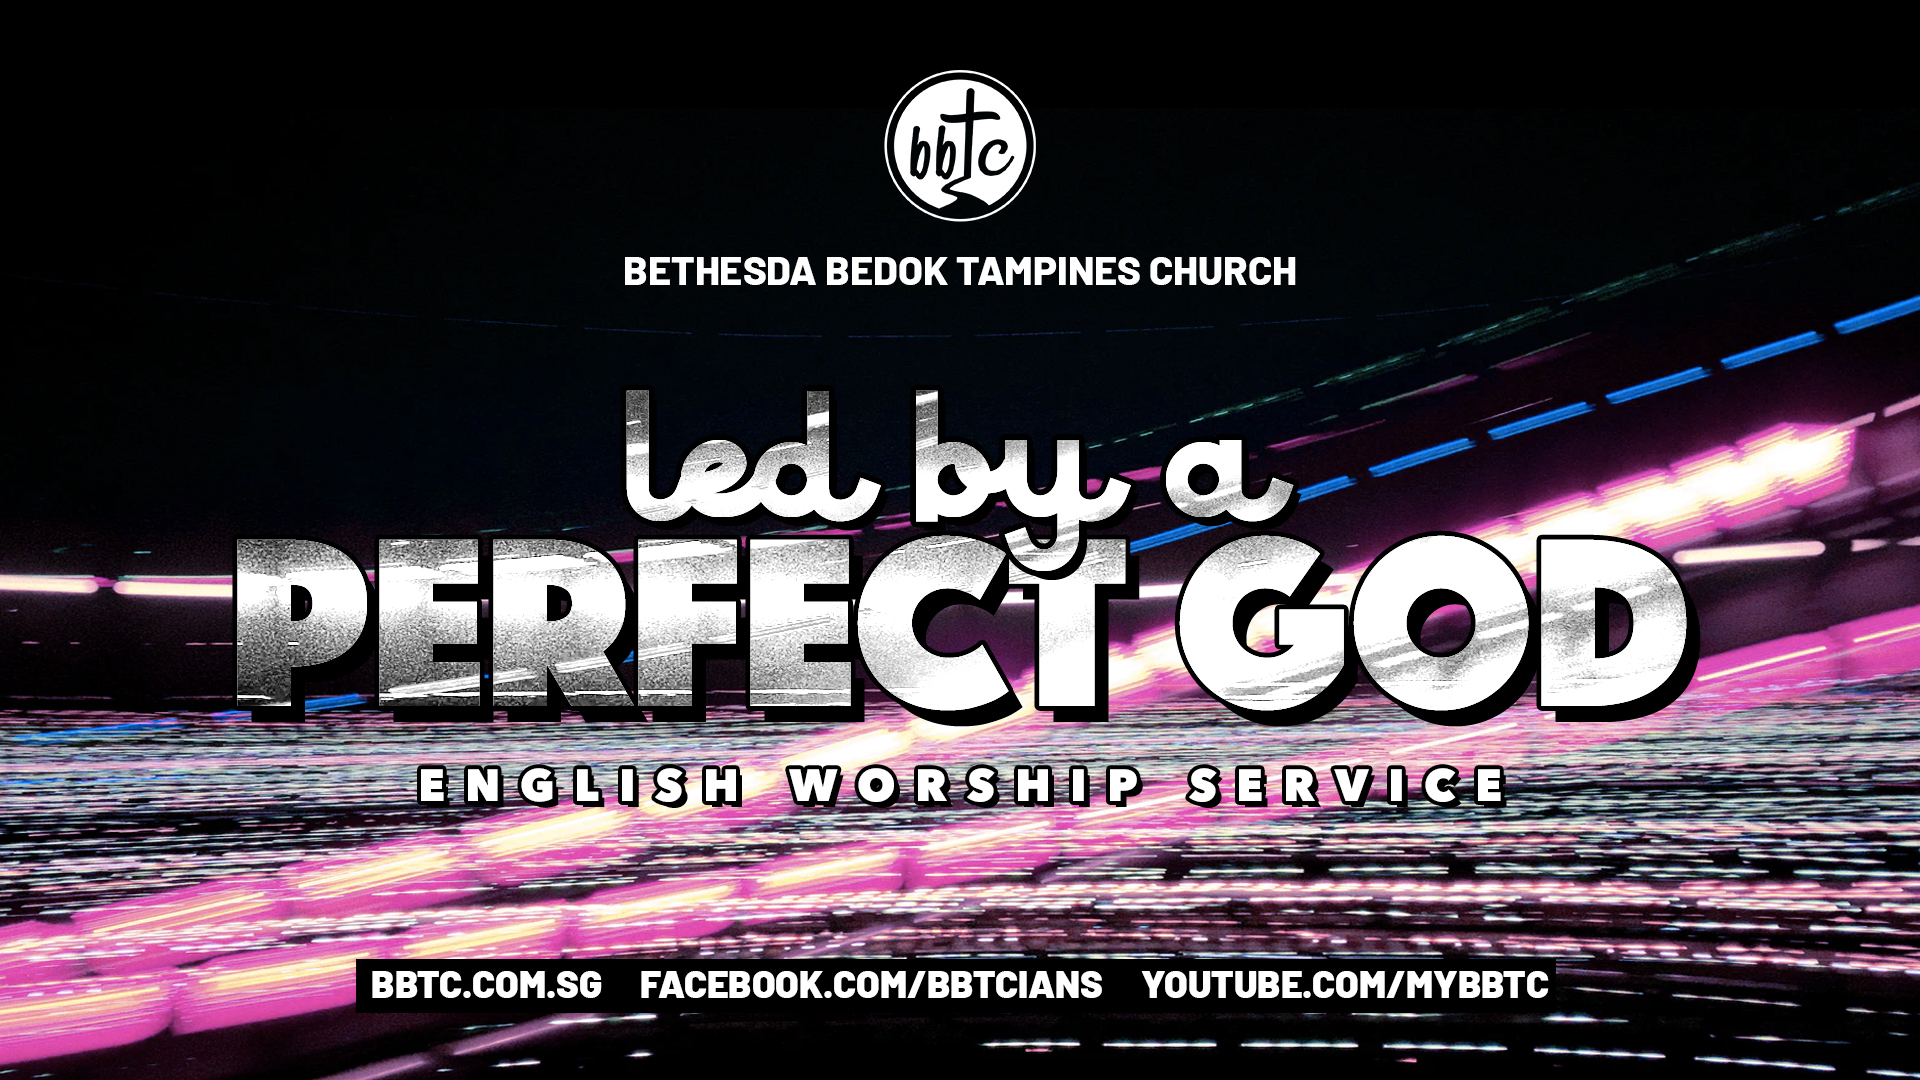 Led by a Perfect God